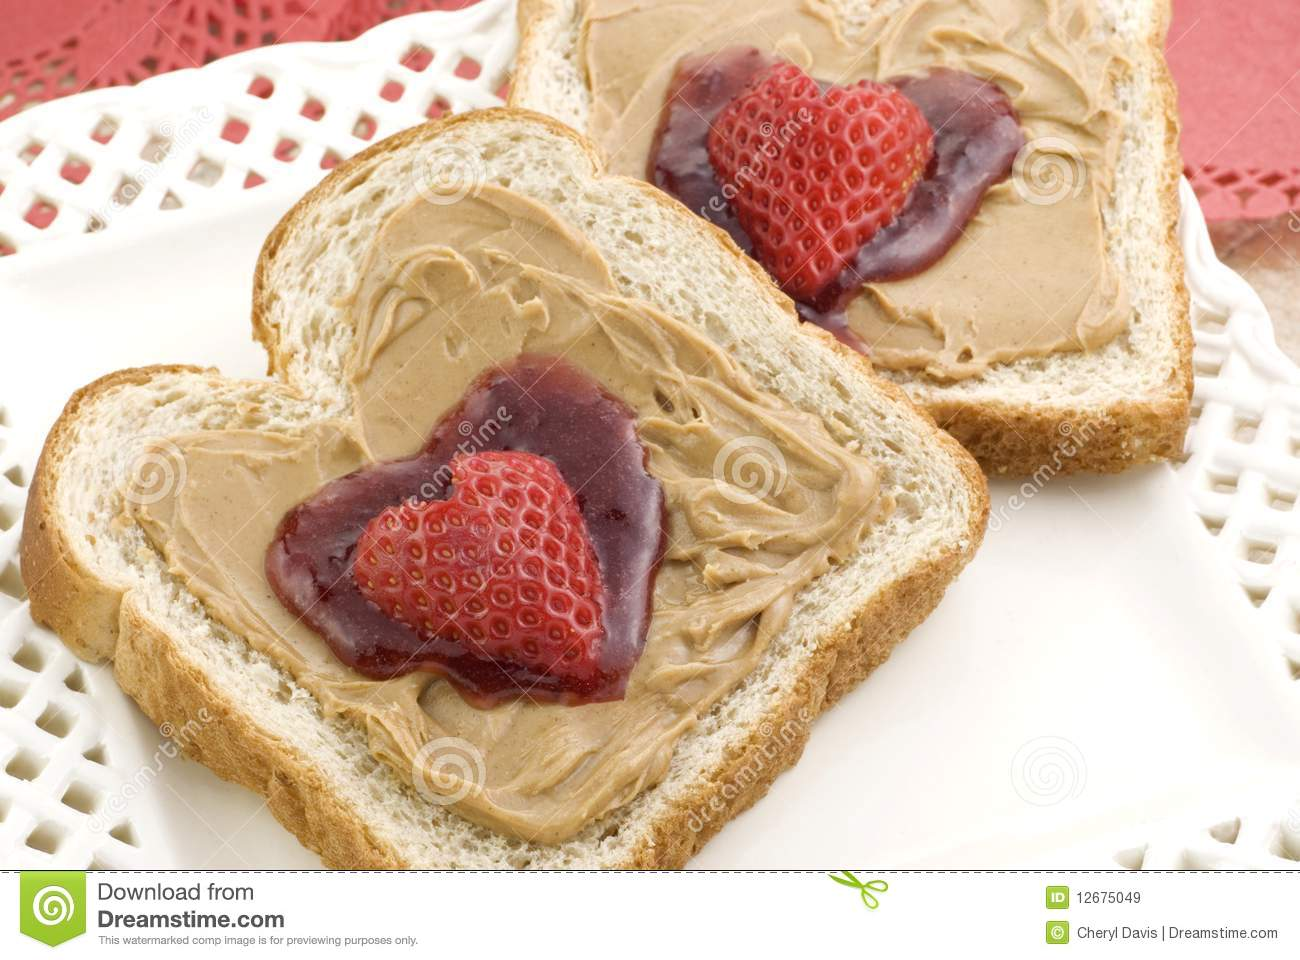 peanut butter and strawberry jam in a heart shape, topped with a heart ...